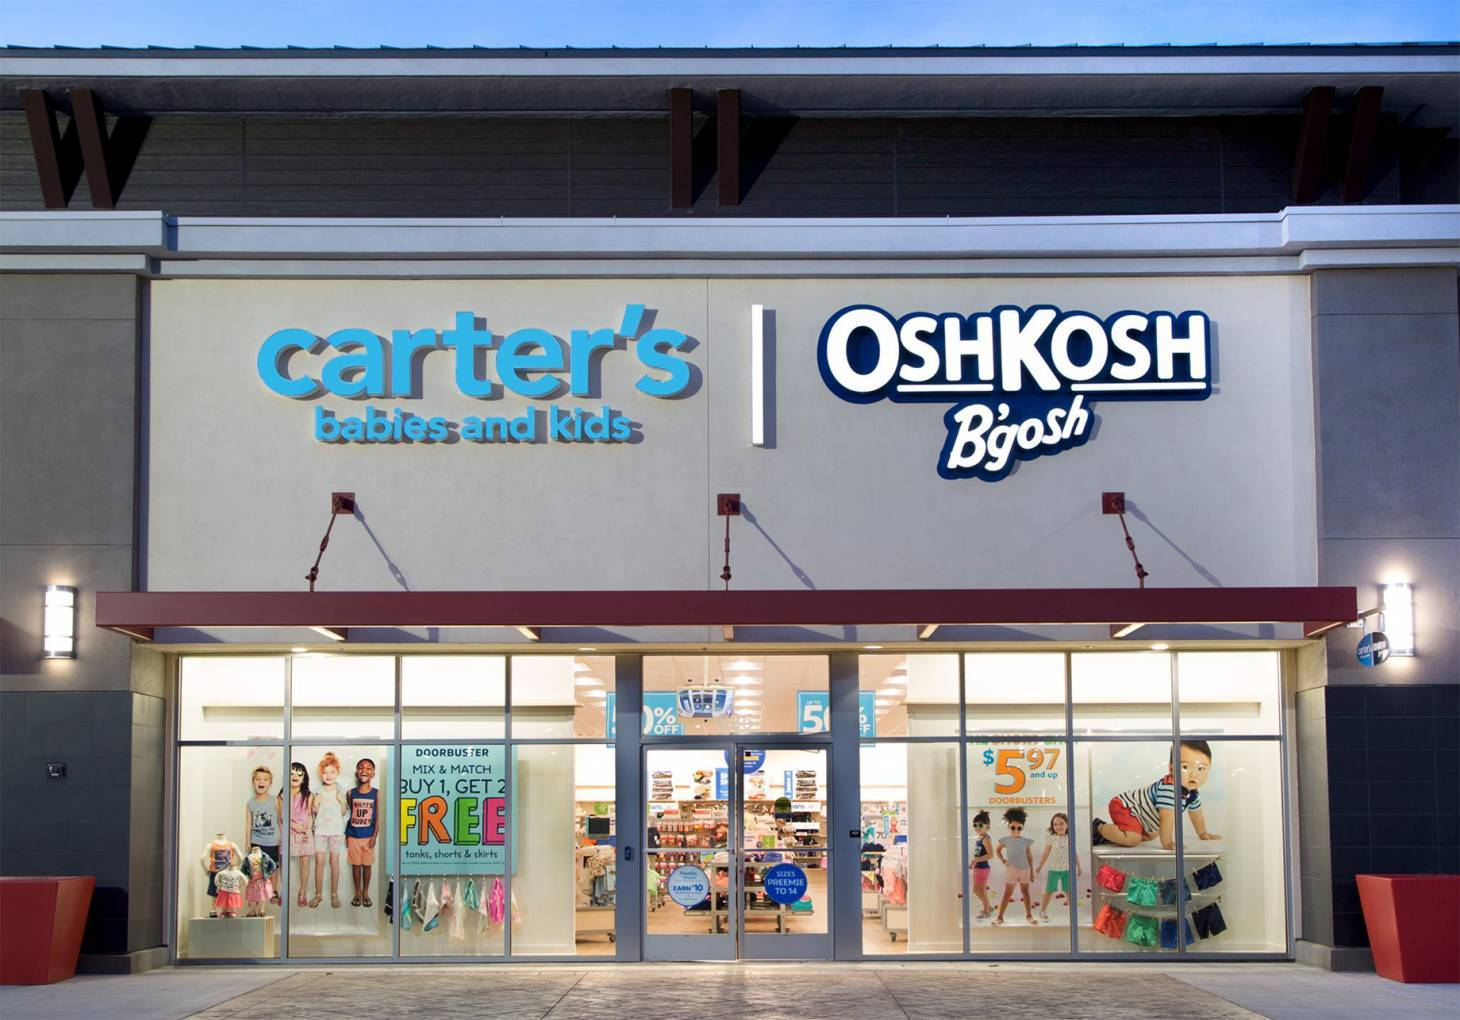 238d9a68b The Carter's marketing team has stepped up customer-acquisition efforts and  focused on baby-apparel buyers living near Toys 'R' Us stores